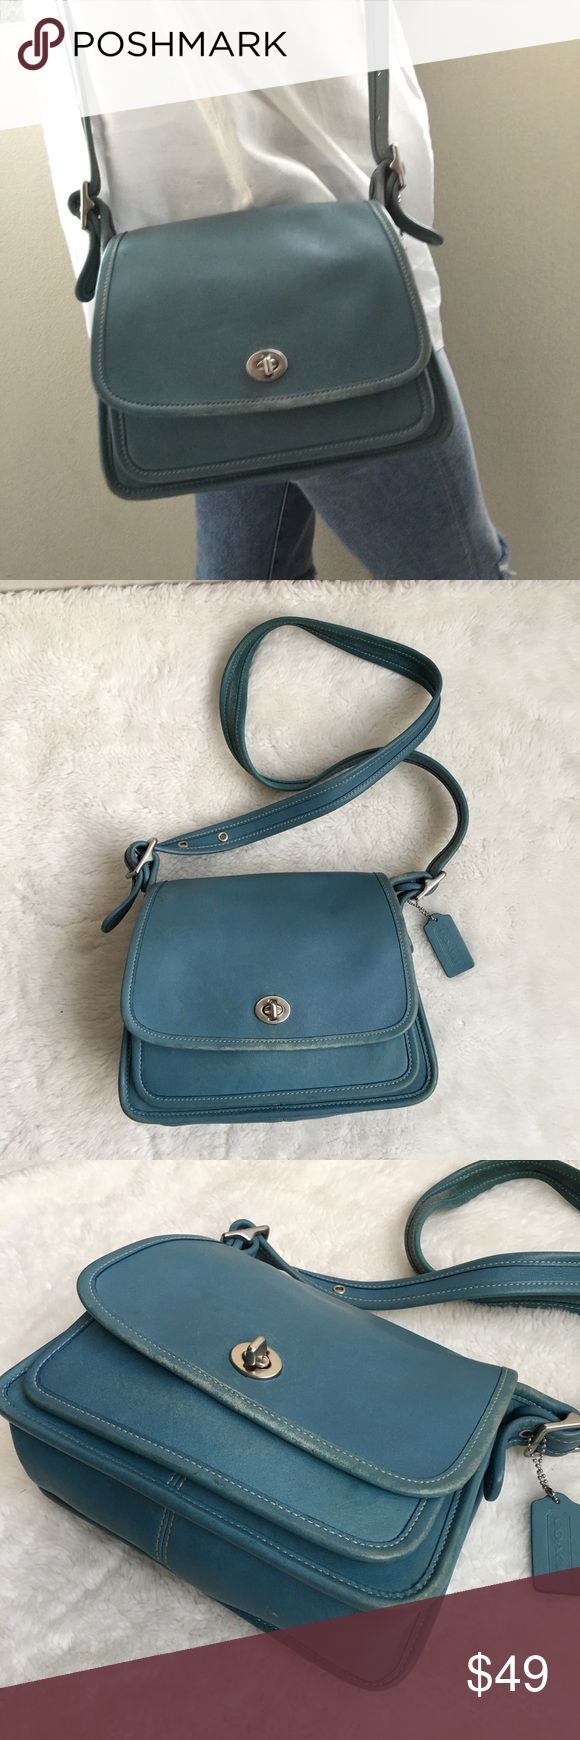 "Vintage Coach Legacy Blue Leather Flap Bag Pre-owned authentic Vintage Coach Legacy Blue Leather Flap Bag. It measures 9.5x8"" inches. Strap is 43"" inches. Made in Costa Rica. No. C05Q-9870. Bag has signs of wear and patina throughout due to its age. Please look at pictures for better reference. Happy Shopping! Coach Bags Crossbody Bags"